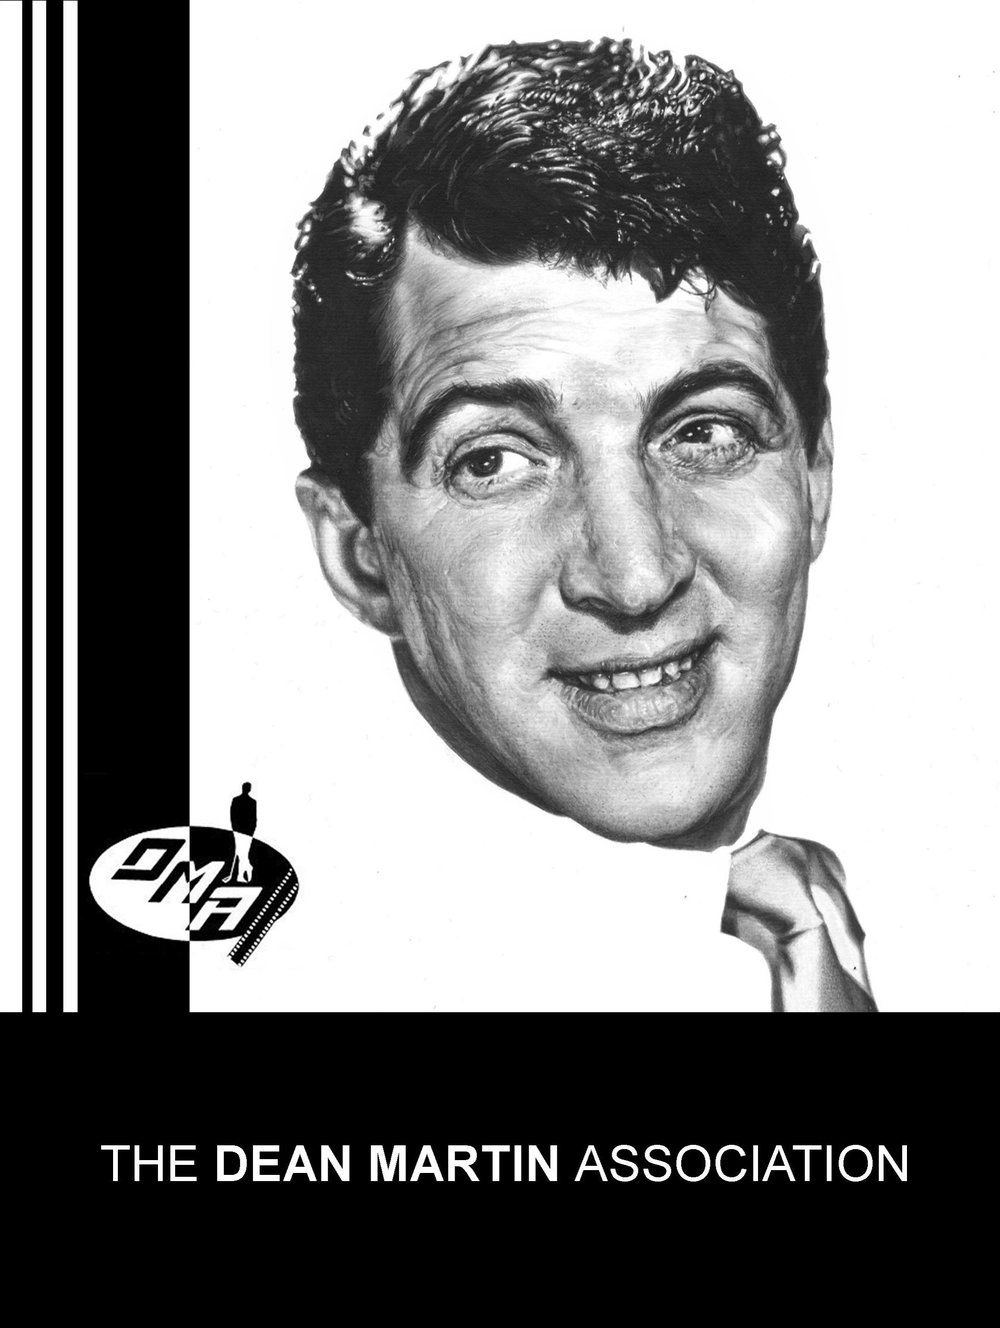 Founded in 1960, the Dean Martin Association is proud to be the first official organisation dedicated to Dino in the world. Their Chairperson right up until his sad death on Christmas Day 1995, Dino personally sanctioned the creation of the DMA, enabling them to promote his career and honor his talent as one of the world's greatest entertainers. 2020 will see their 60th Anniversary.